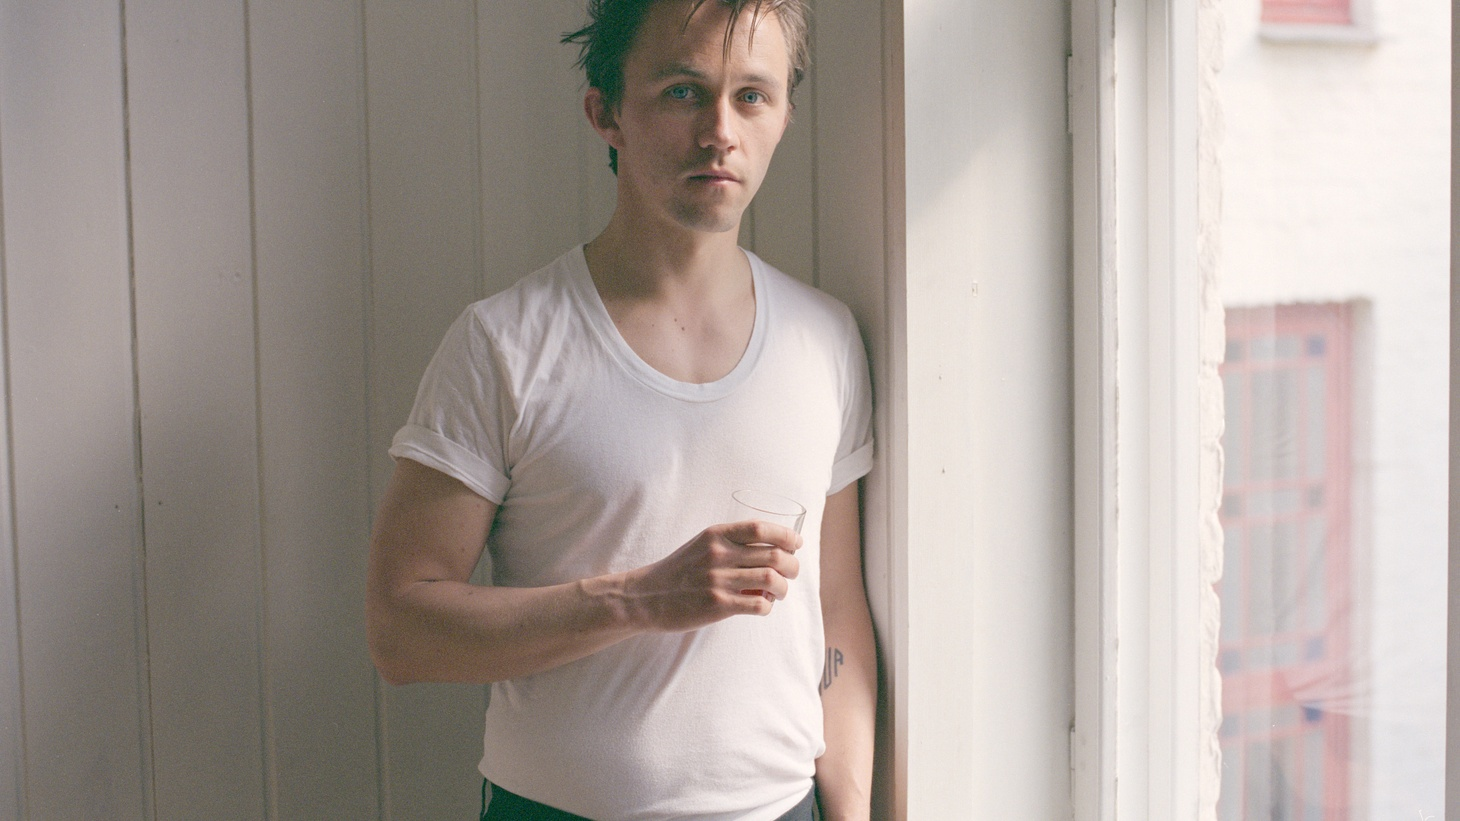 Norwegian singer/songwriter Lerche takes inspiration from personal turmoil to make a musical celebration of life, warts and all.